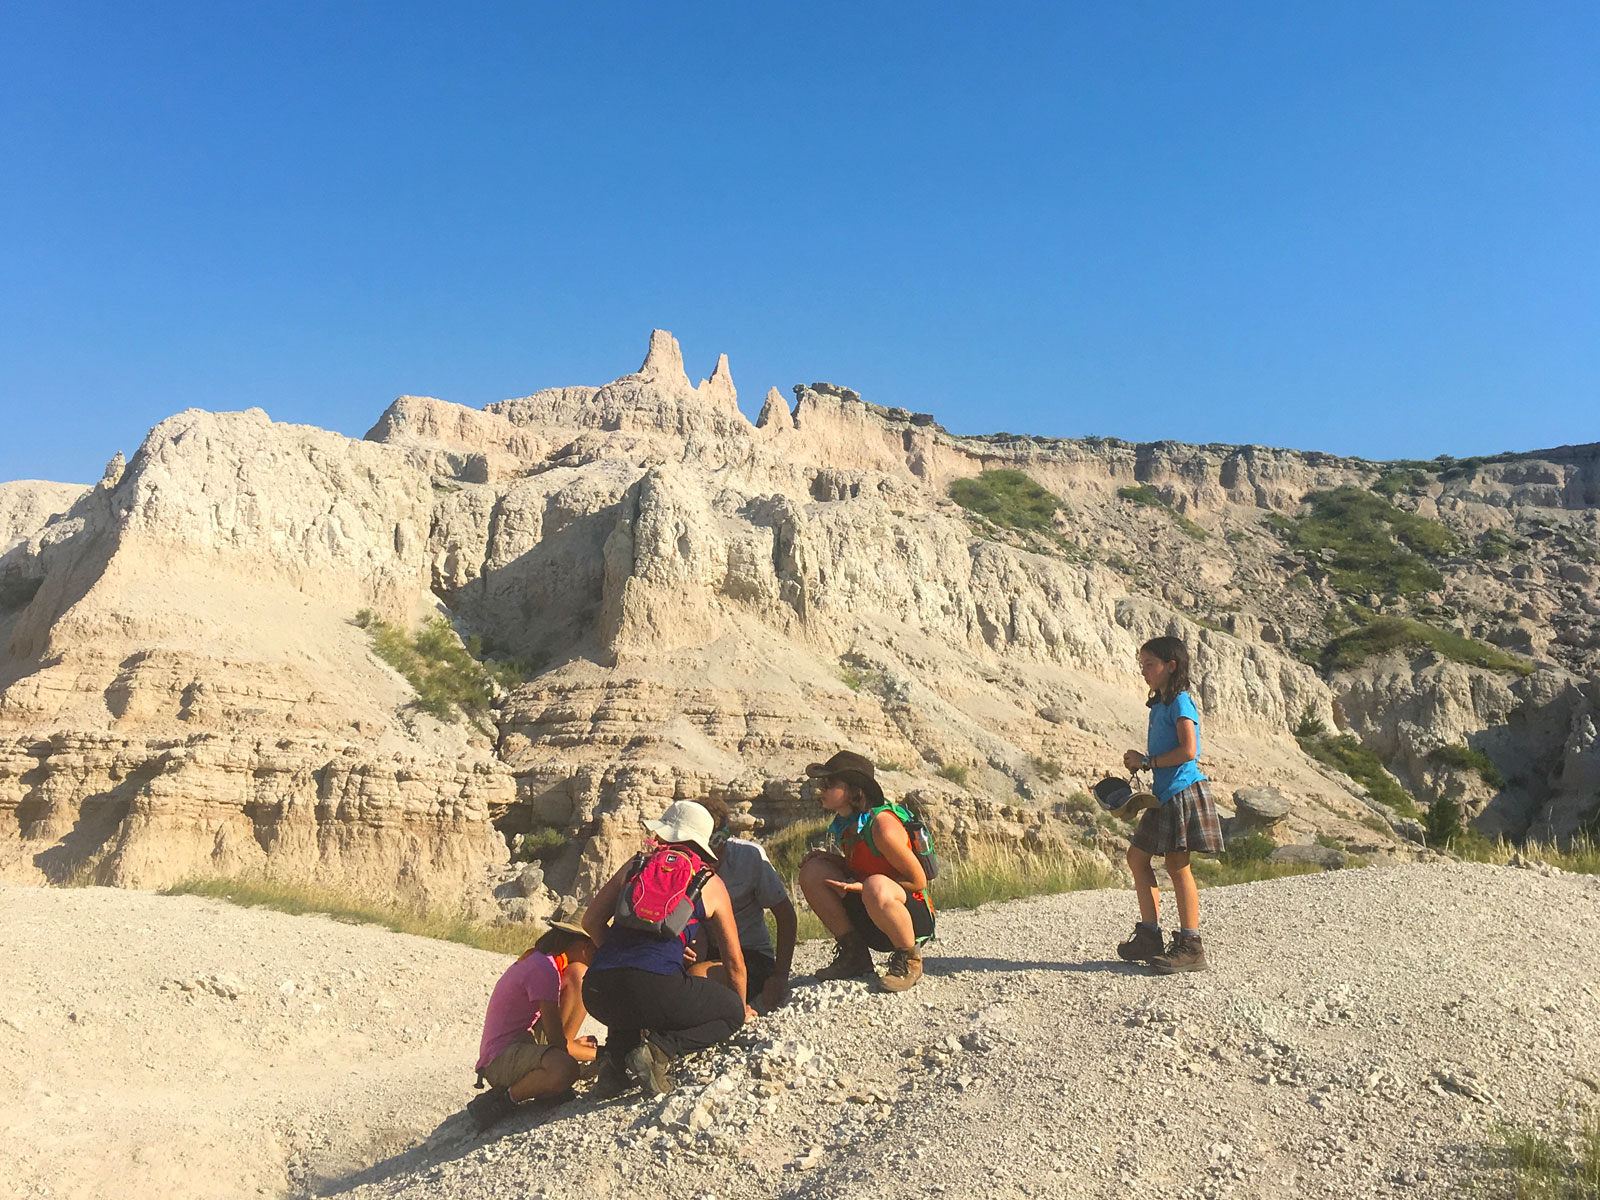 Family looking for fossils on the Notch Trail in the Badlands National Park in South Dakota